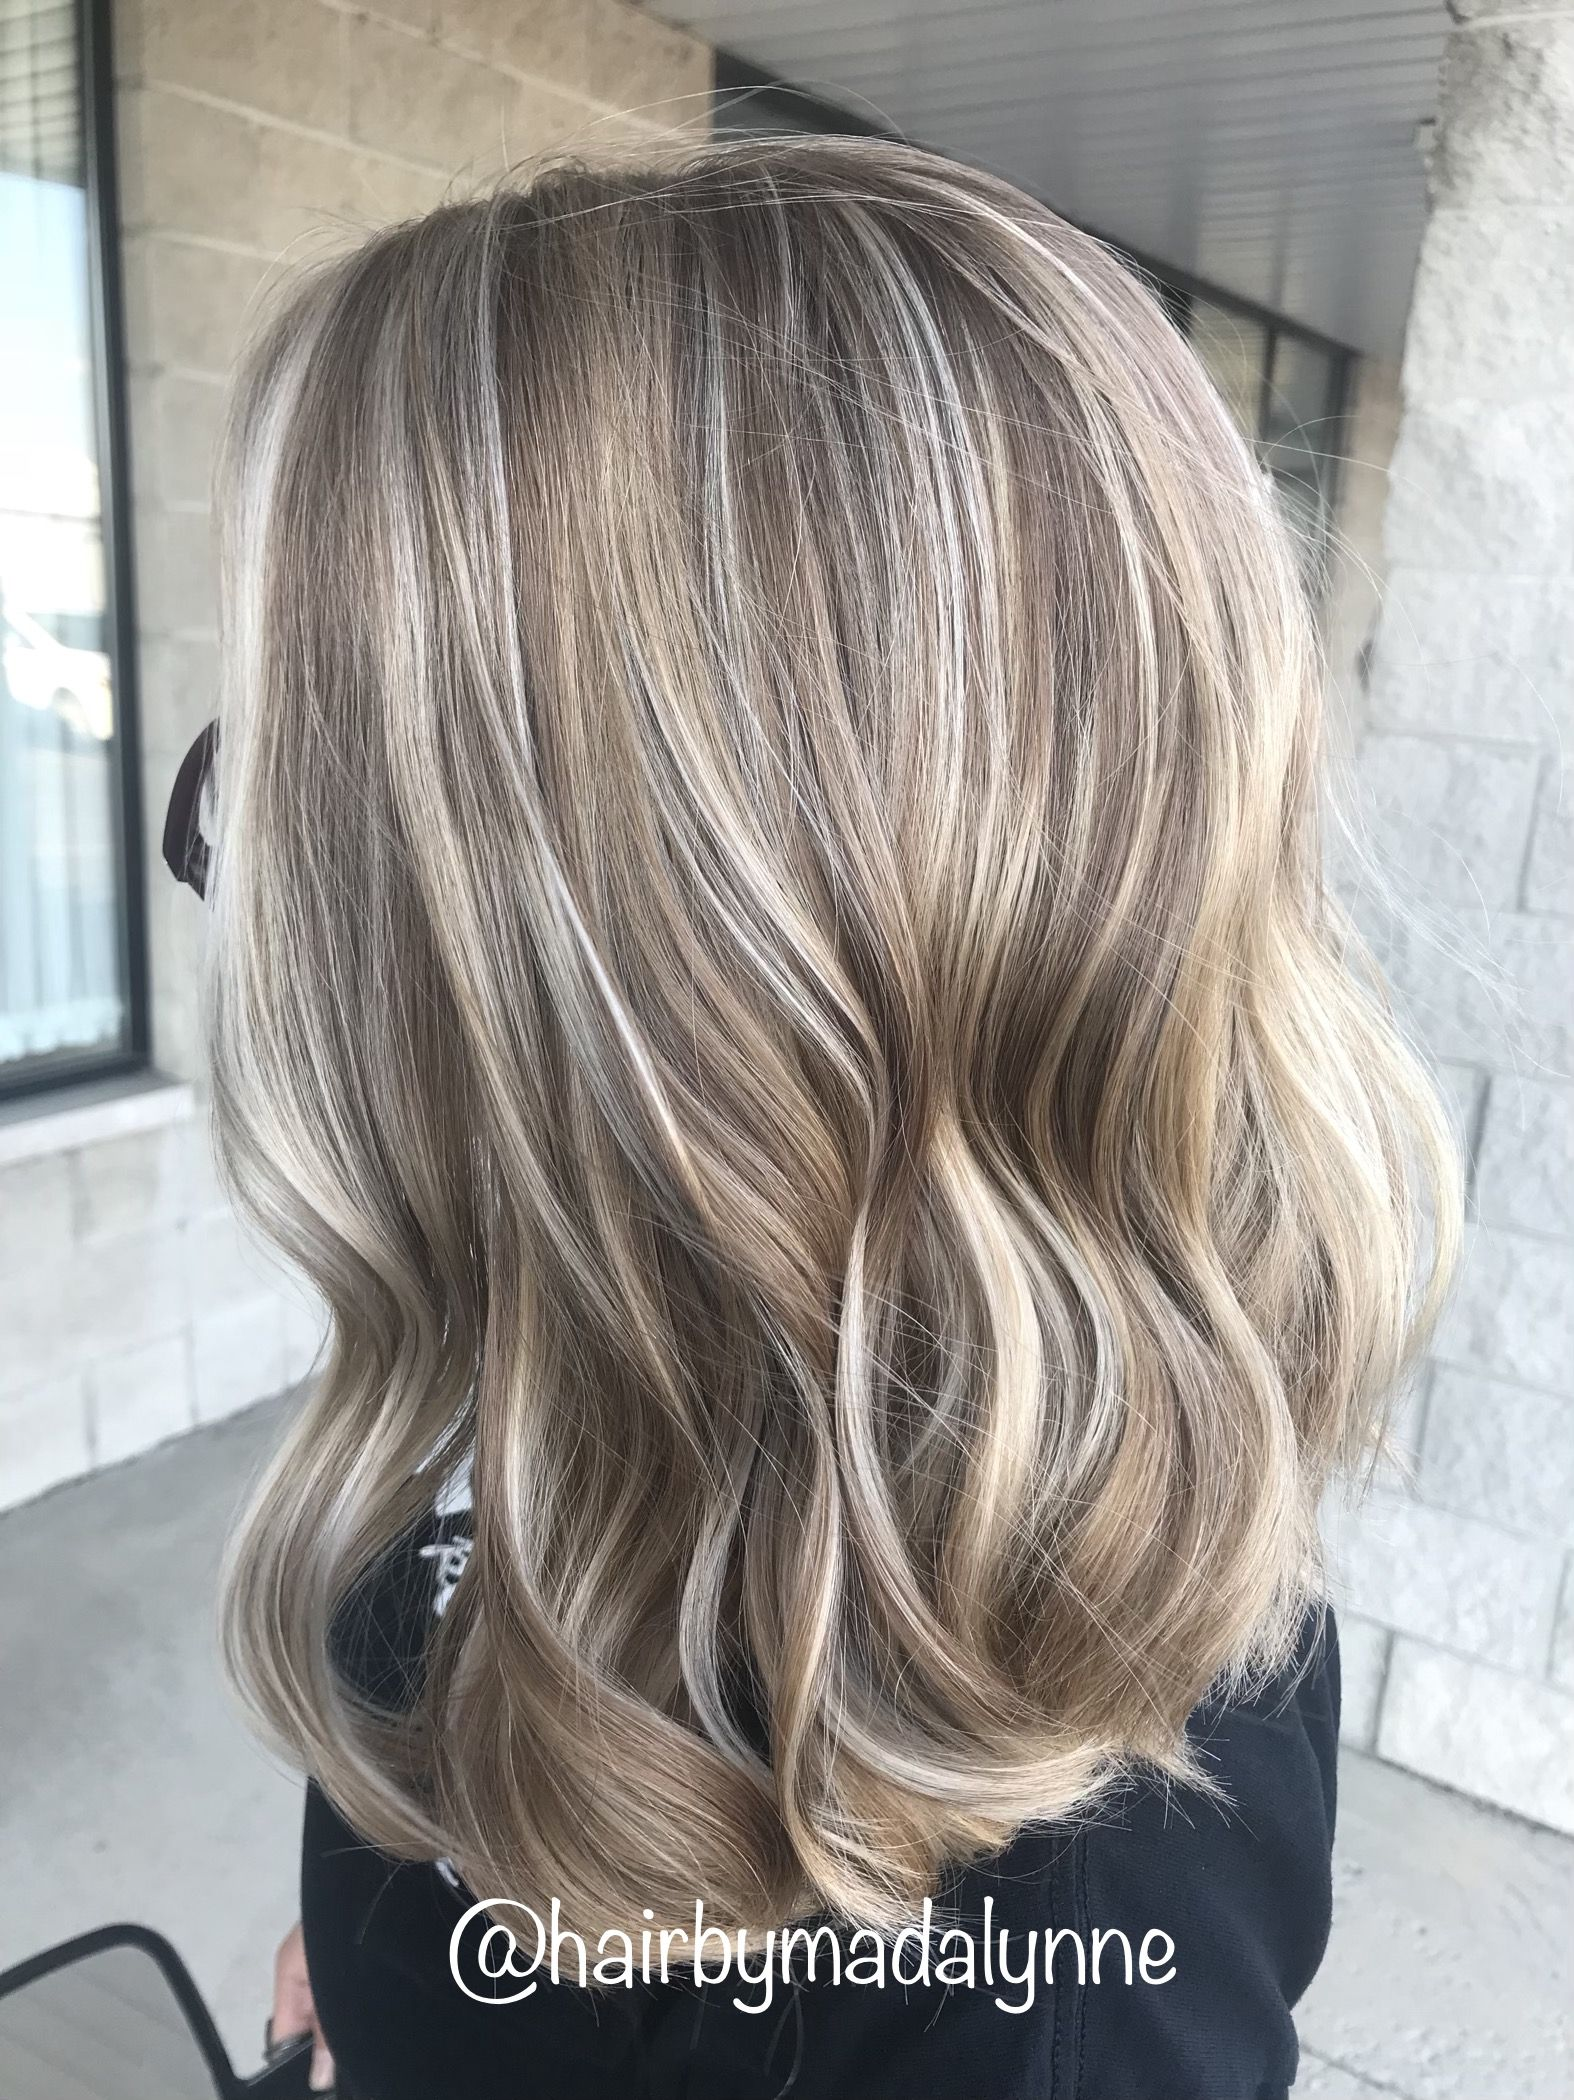 Pin By Ash On Hair Colors In 2020 Hair Inspiration Light Hair Hair